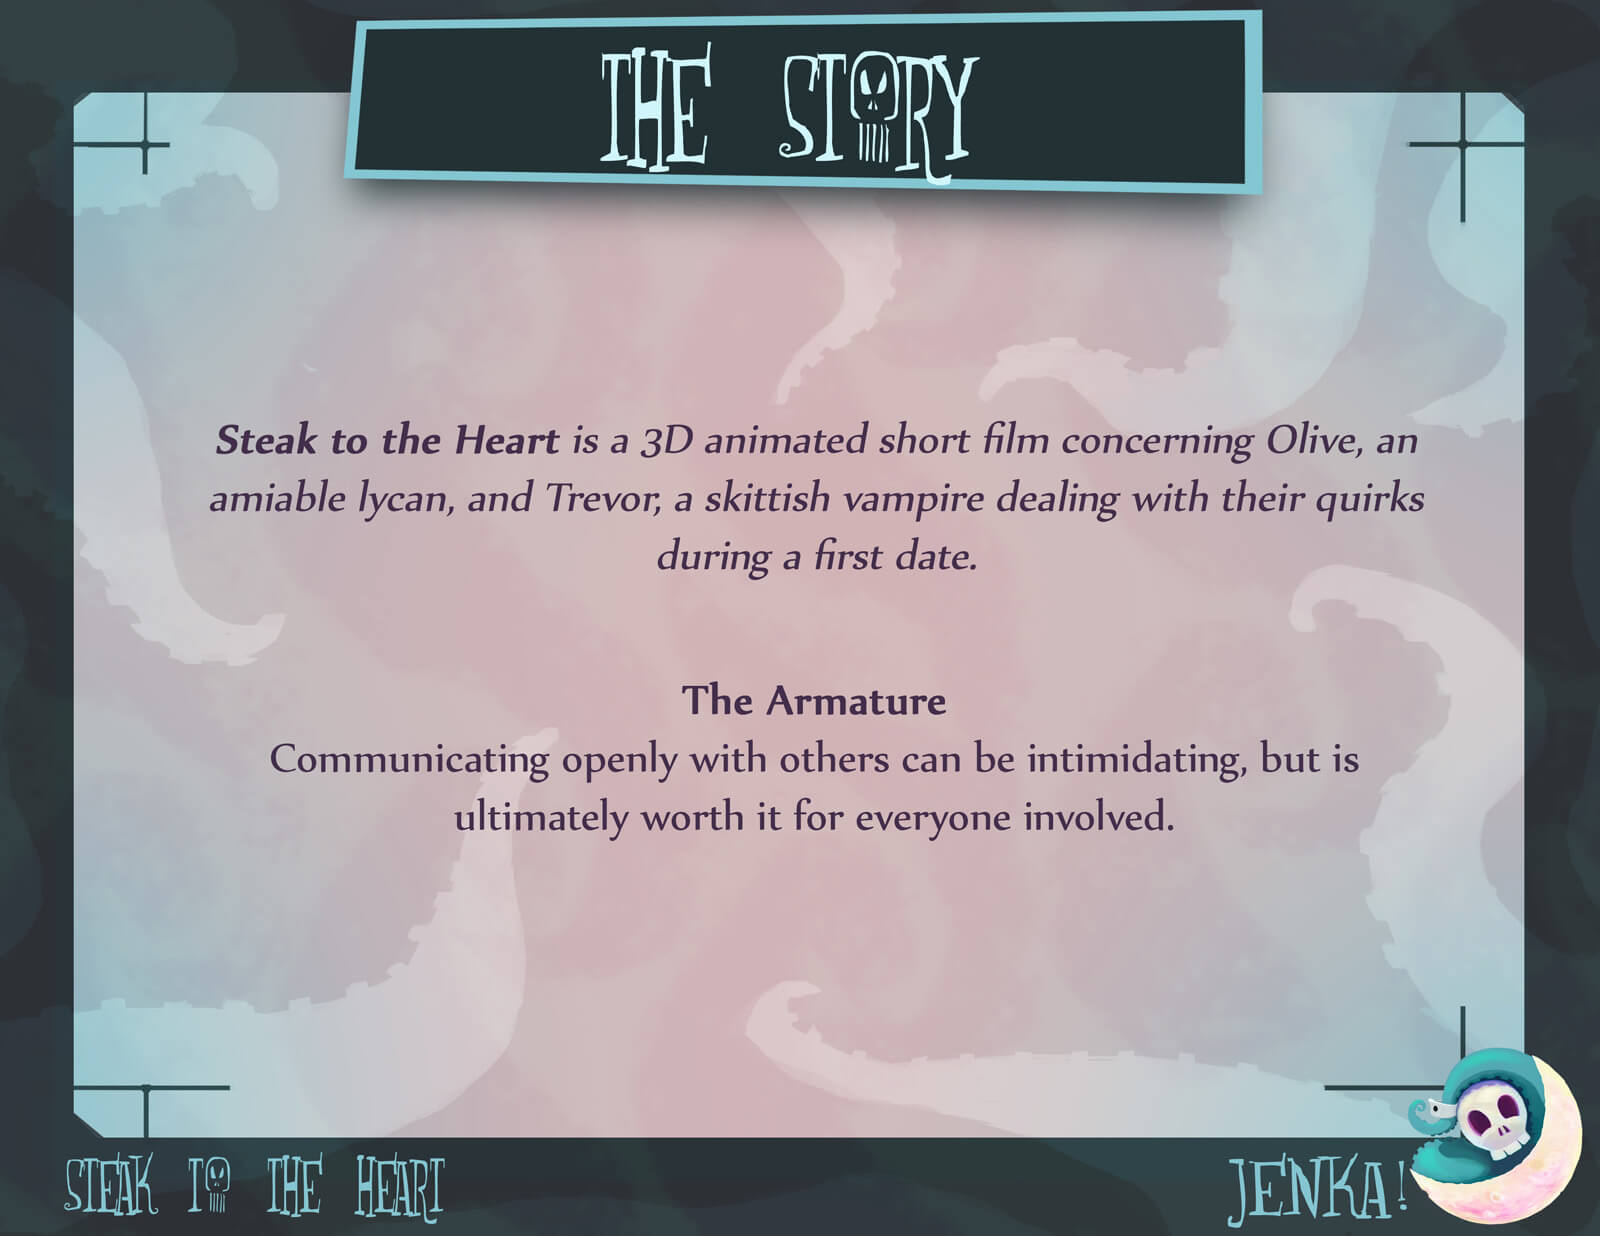 Story slide for the film Steak to the Heart, describing the plot and overall message of the action